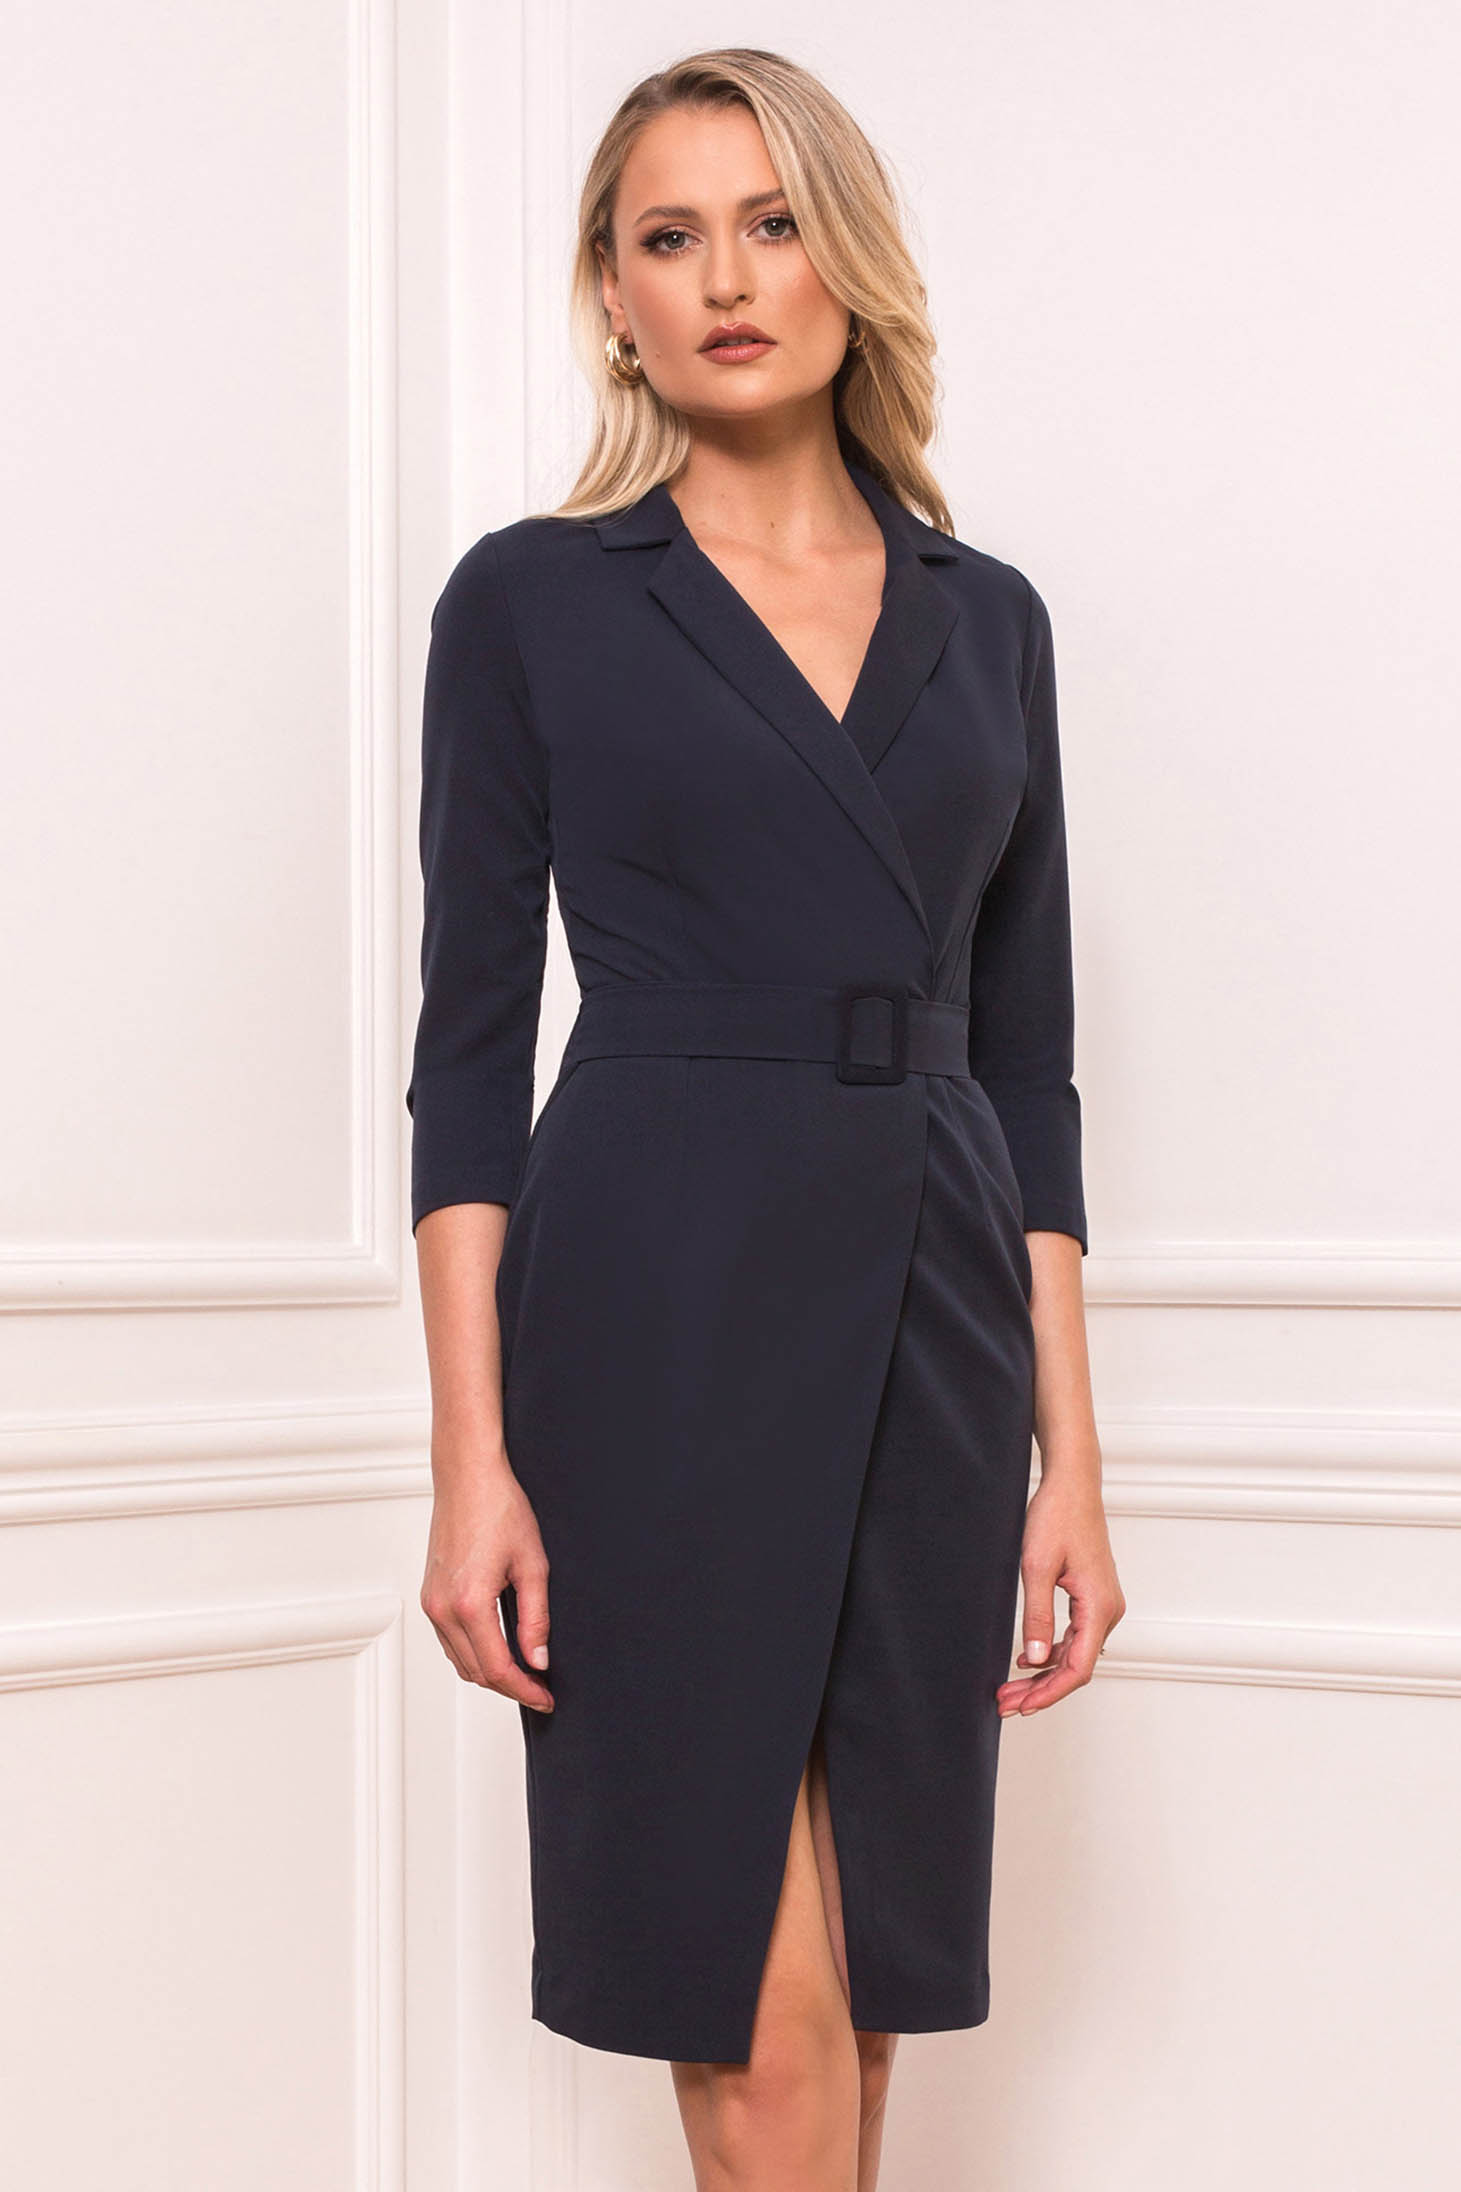 Darkblue dress elegant short cut straight with 3/4 sleeves wrap over skirt accessorized with belt